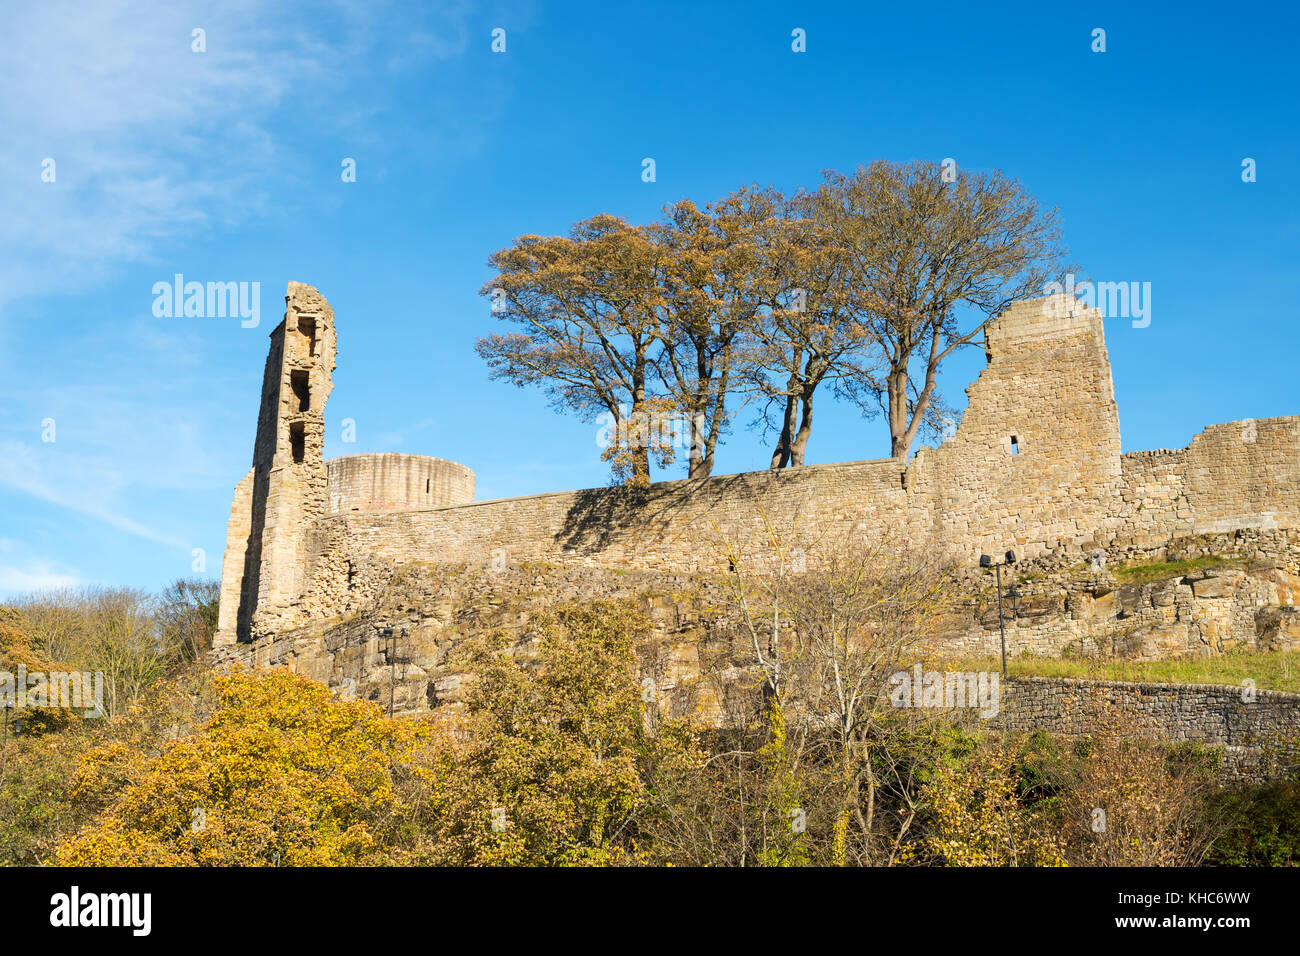 Remains of the town walls and castle, Barnard Castle, Co. Durham, England, UK - Stock Image